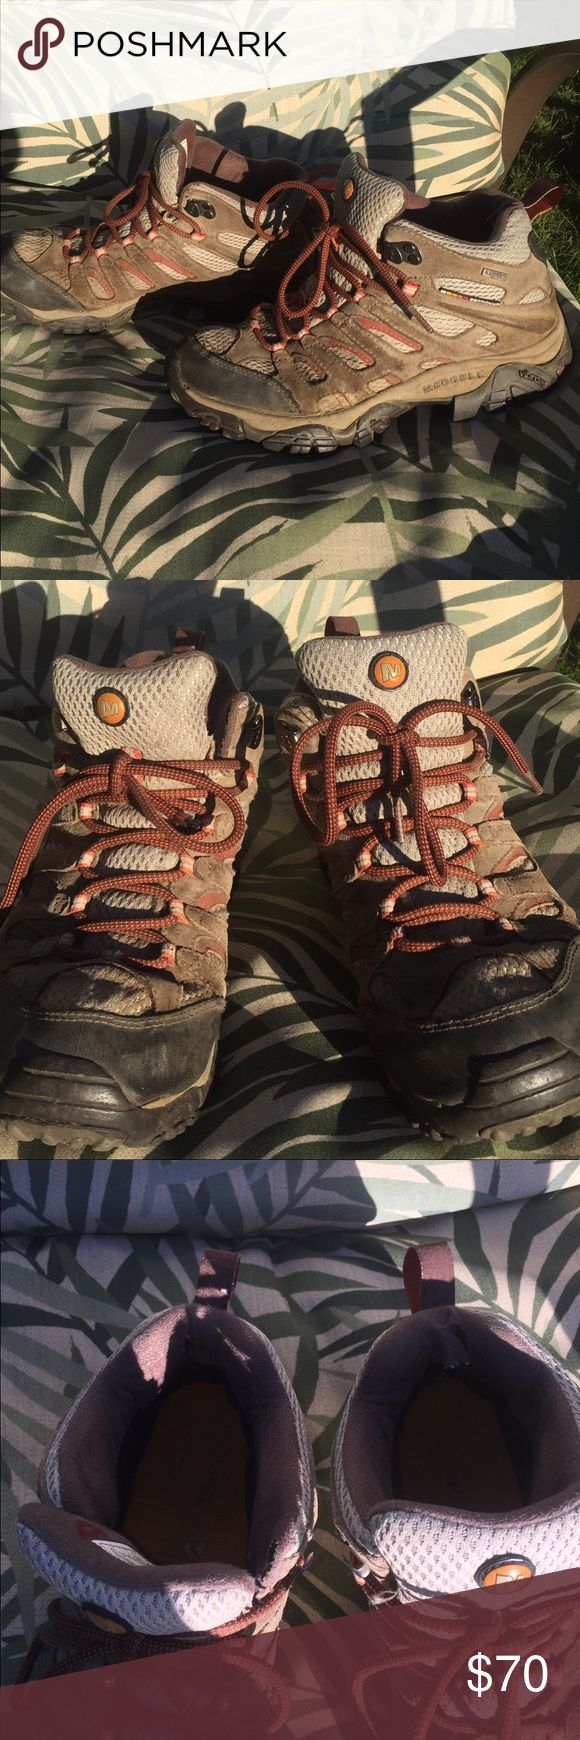 100% waterproof Merrell Women's hiking boots . I won these and love them! So comfortable. Keeps the feet dry! Used but still function great! High quality brand. Merrell Shoes Ankle Boots & Booties